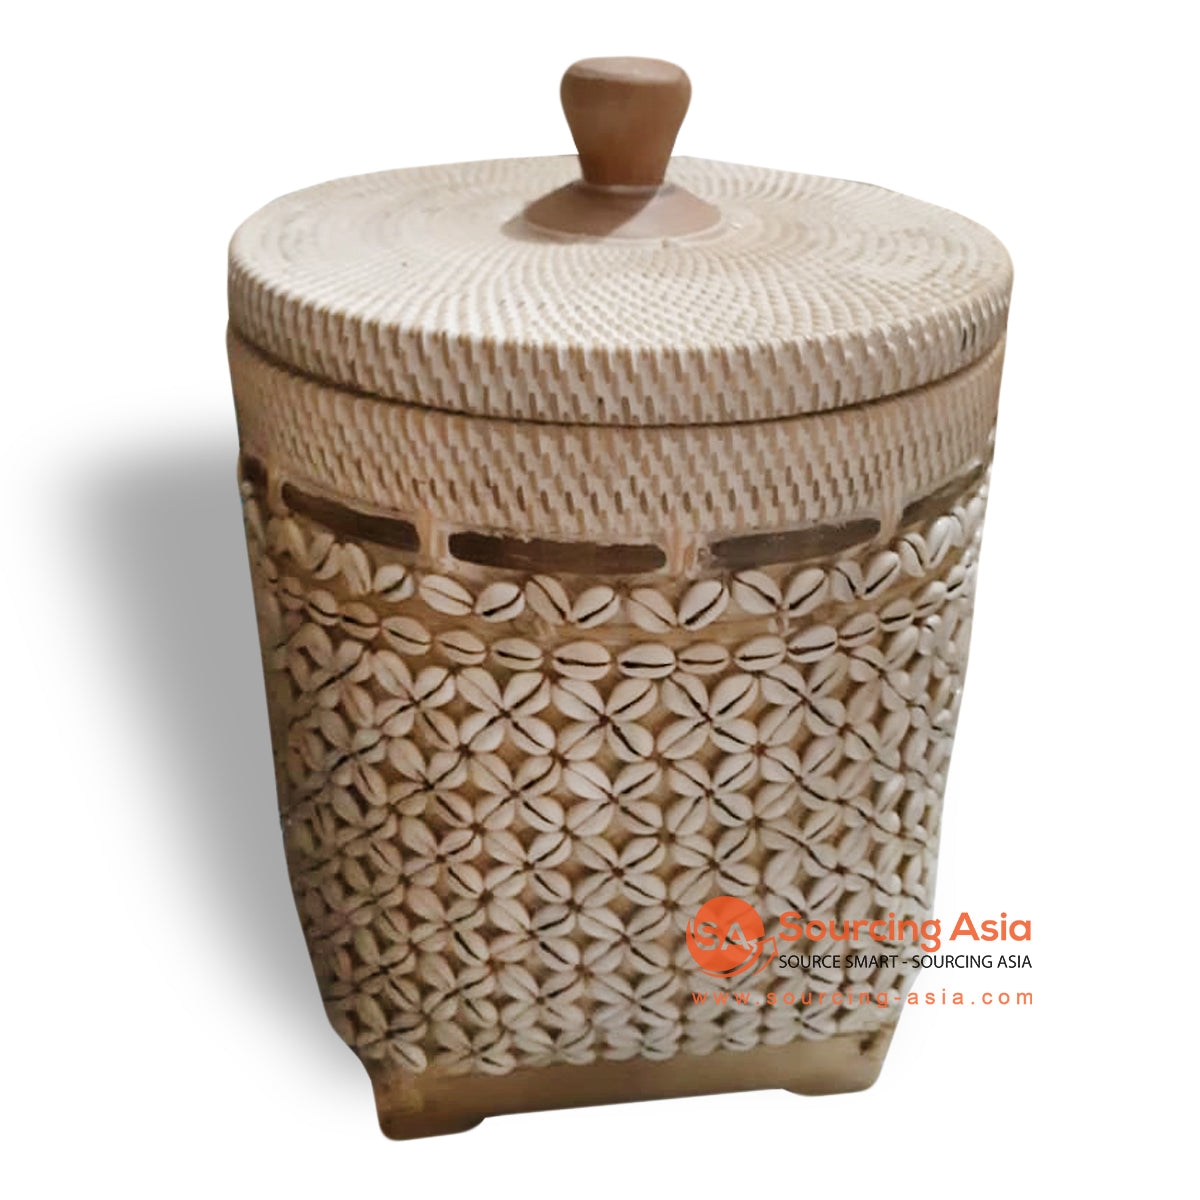 ALI071 SHELL AND RATTAN BASKET